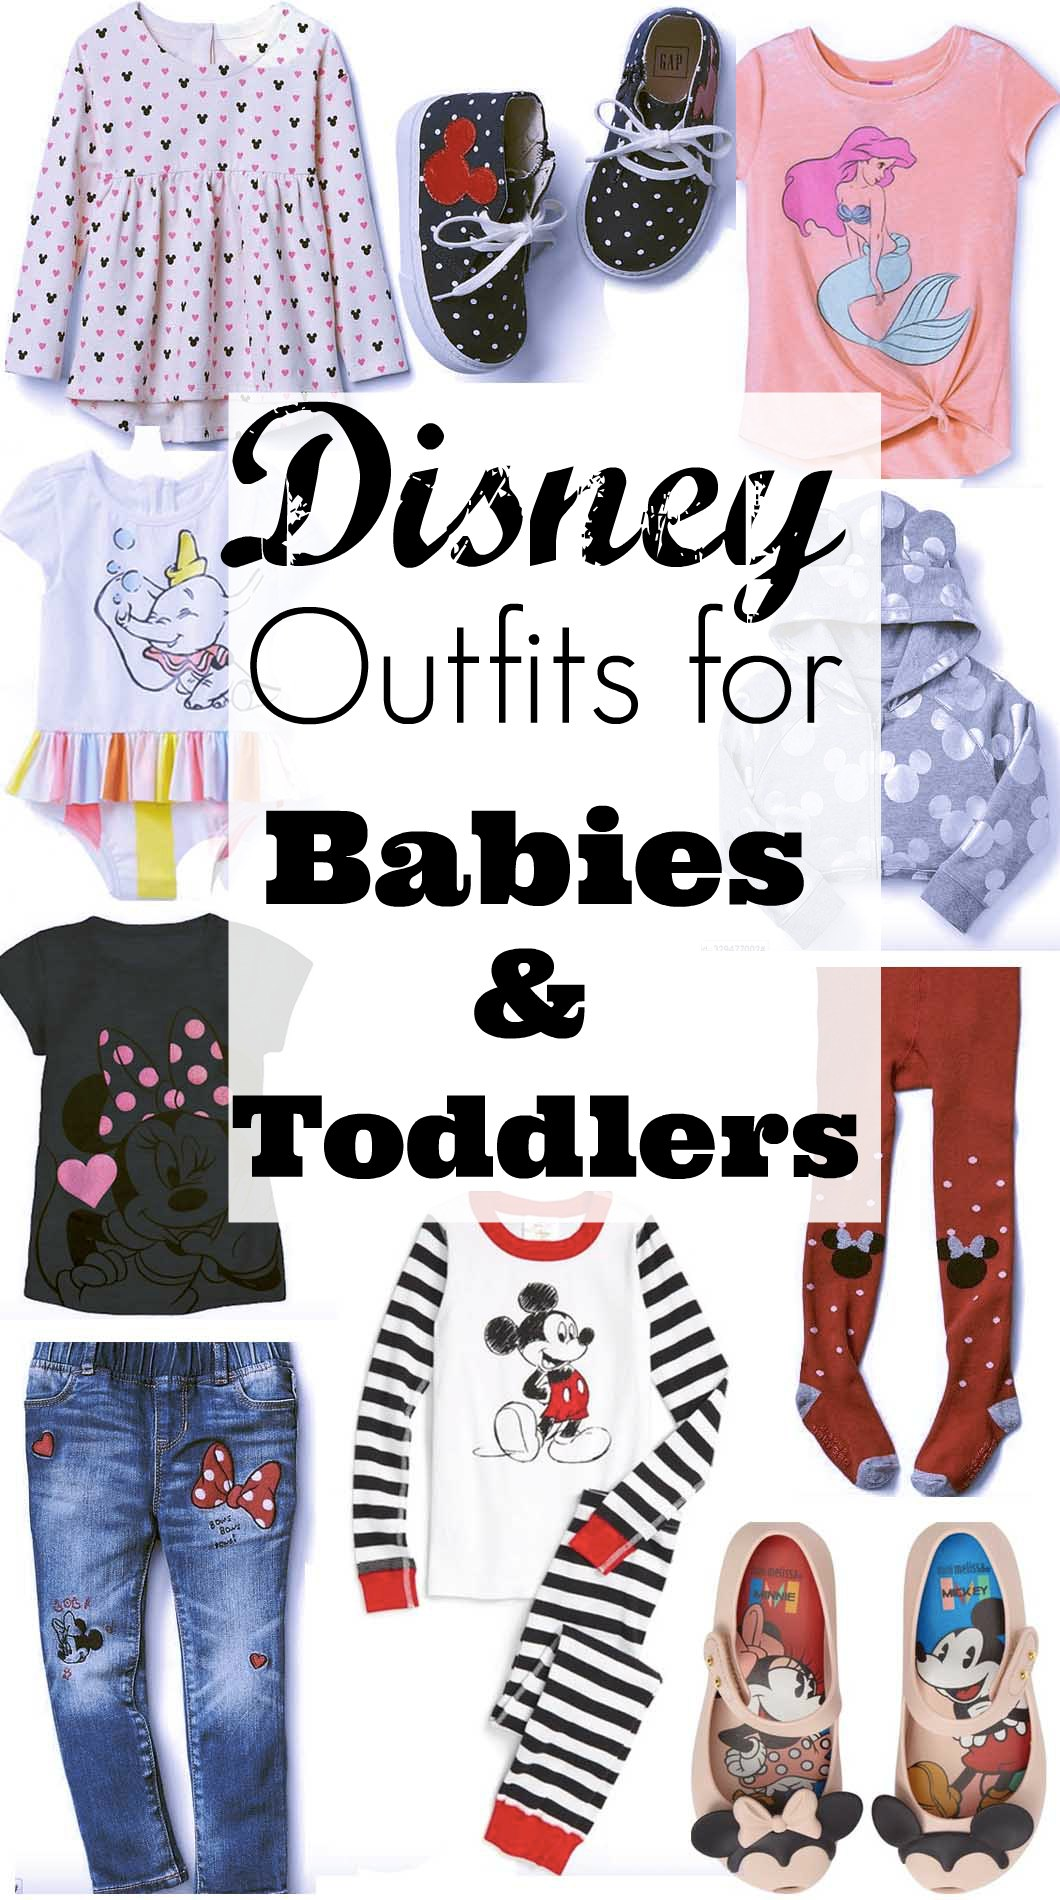 Disney Clothes for Babies and Toddlers by Atlanta mom blogger Happily Hughes